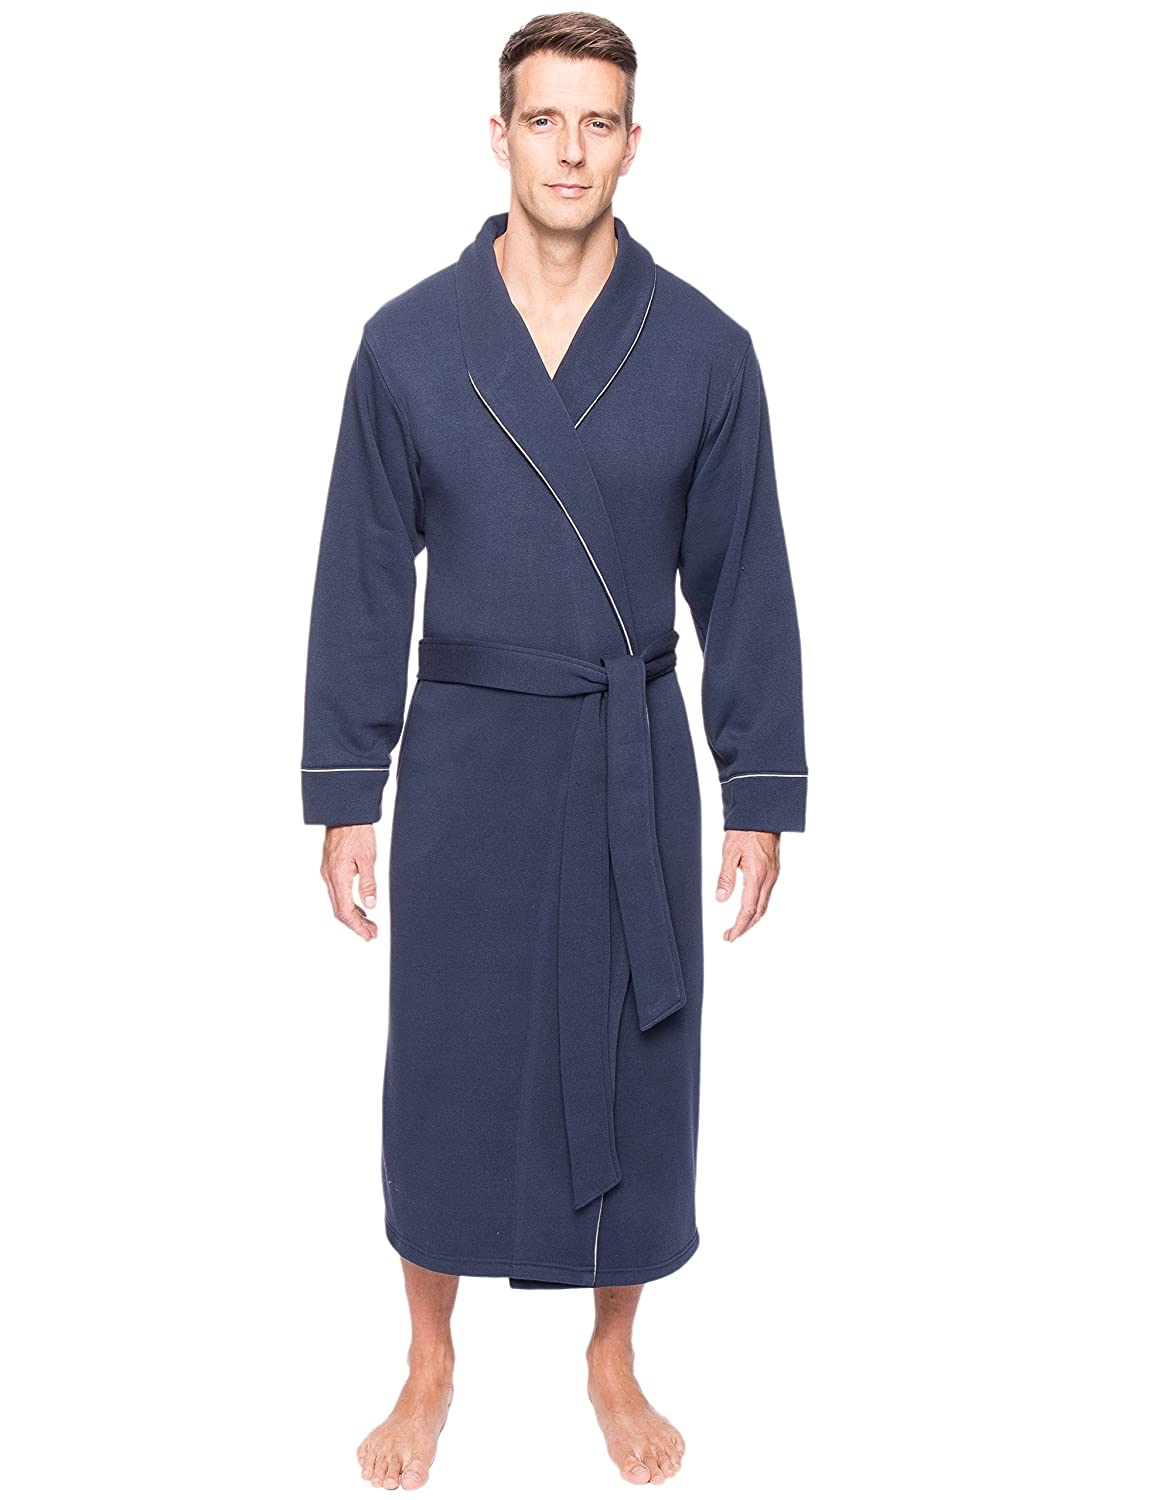 Noble Mount Men's Fleece Lined French Terry Robe